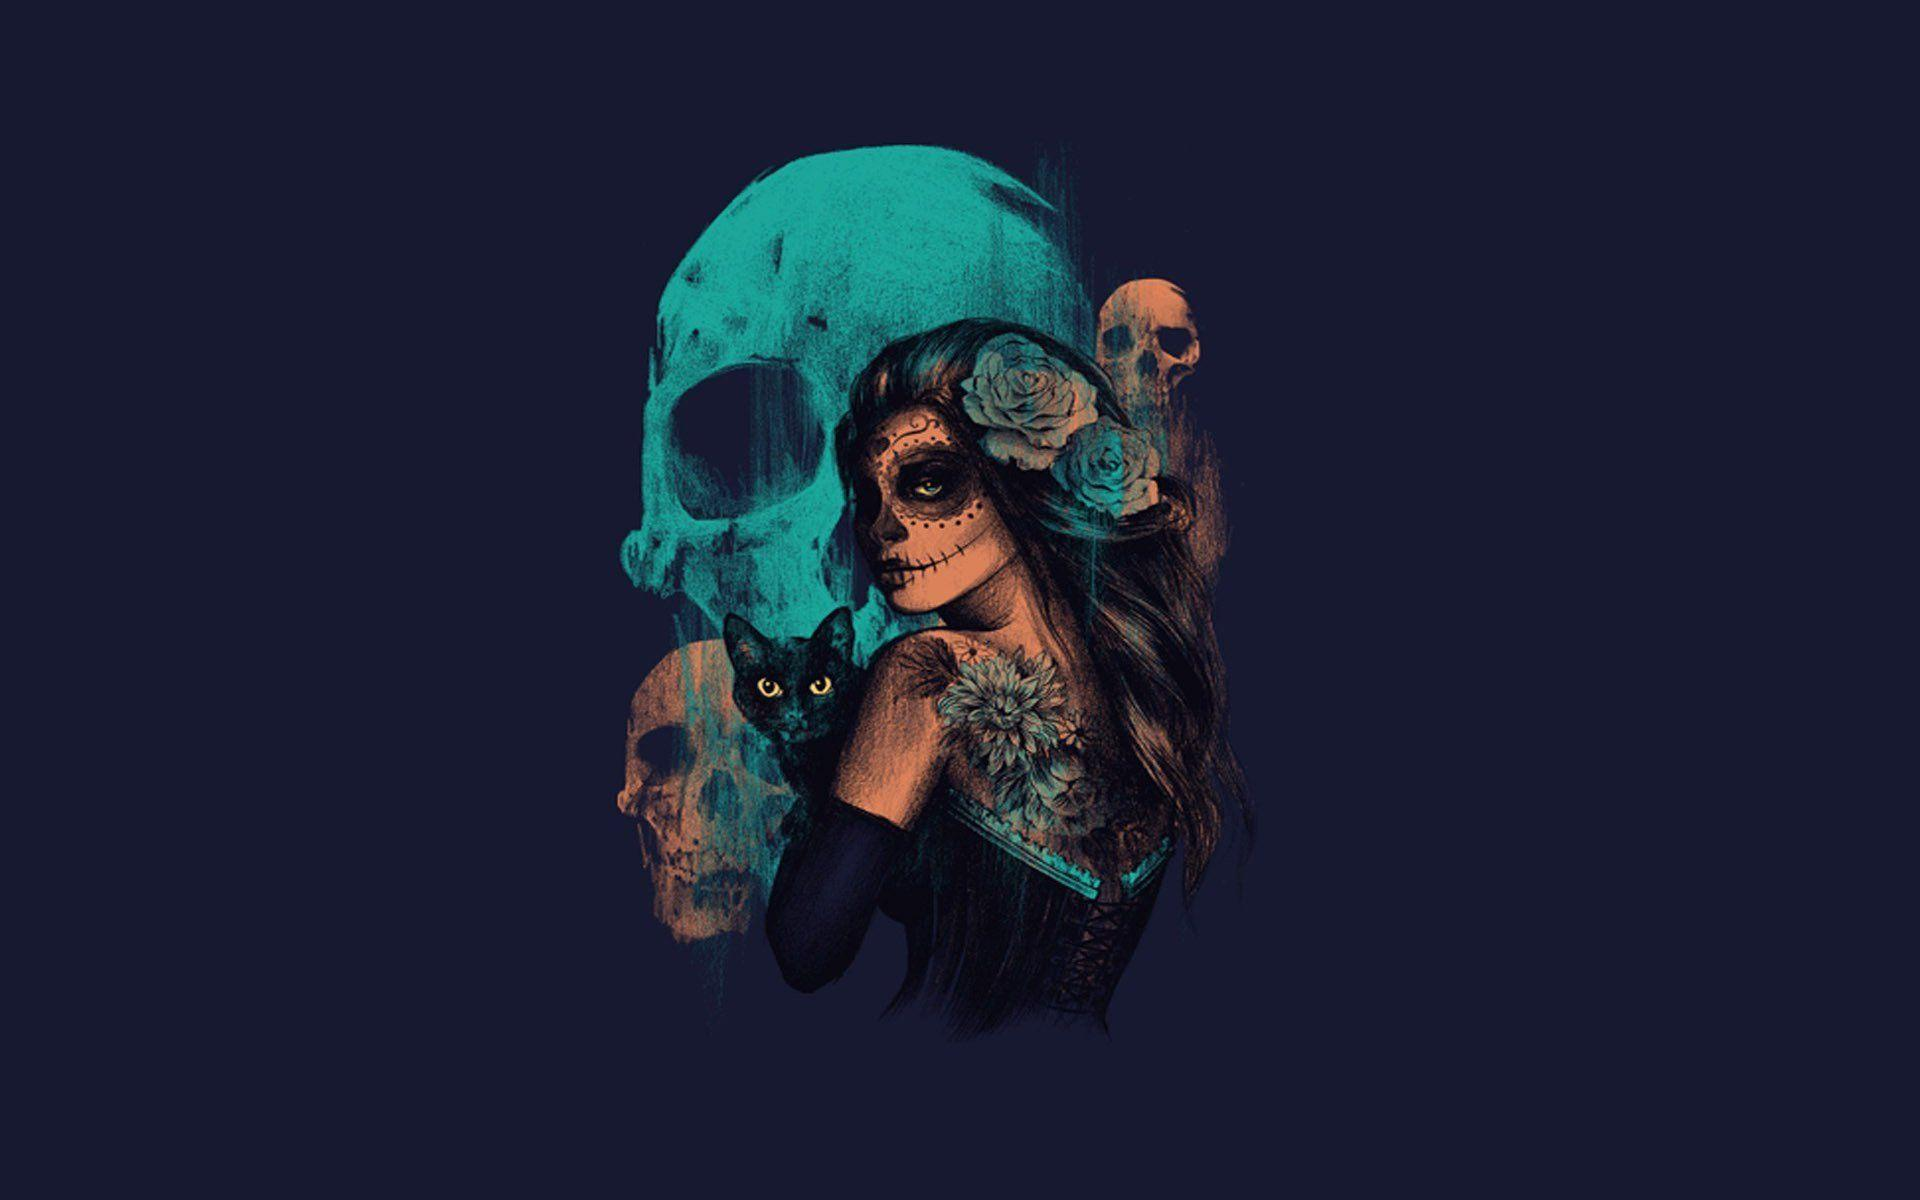 Day Of The Dead Wallpapers - Wallpaper Cave